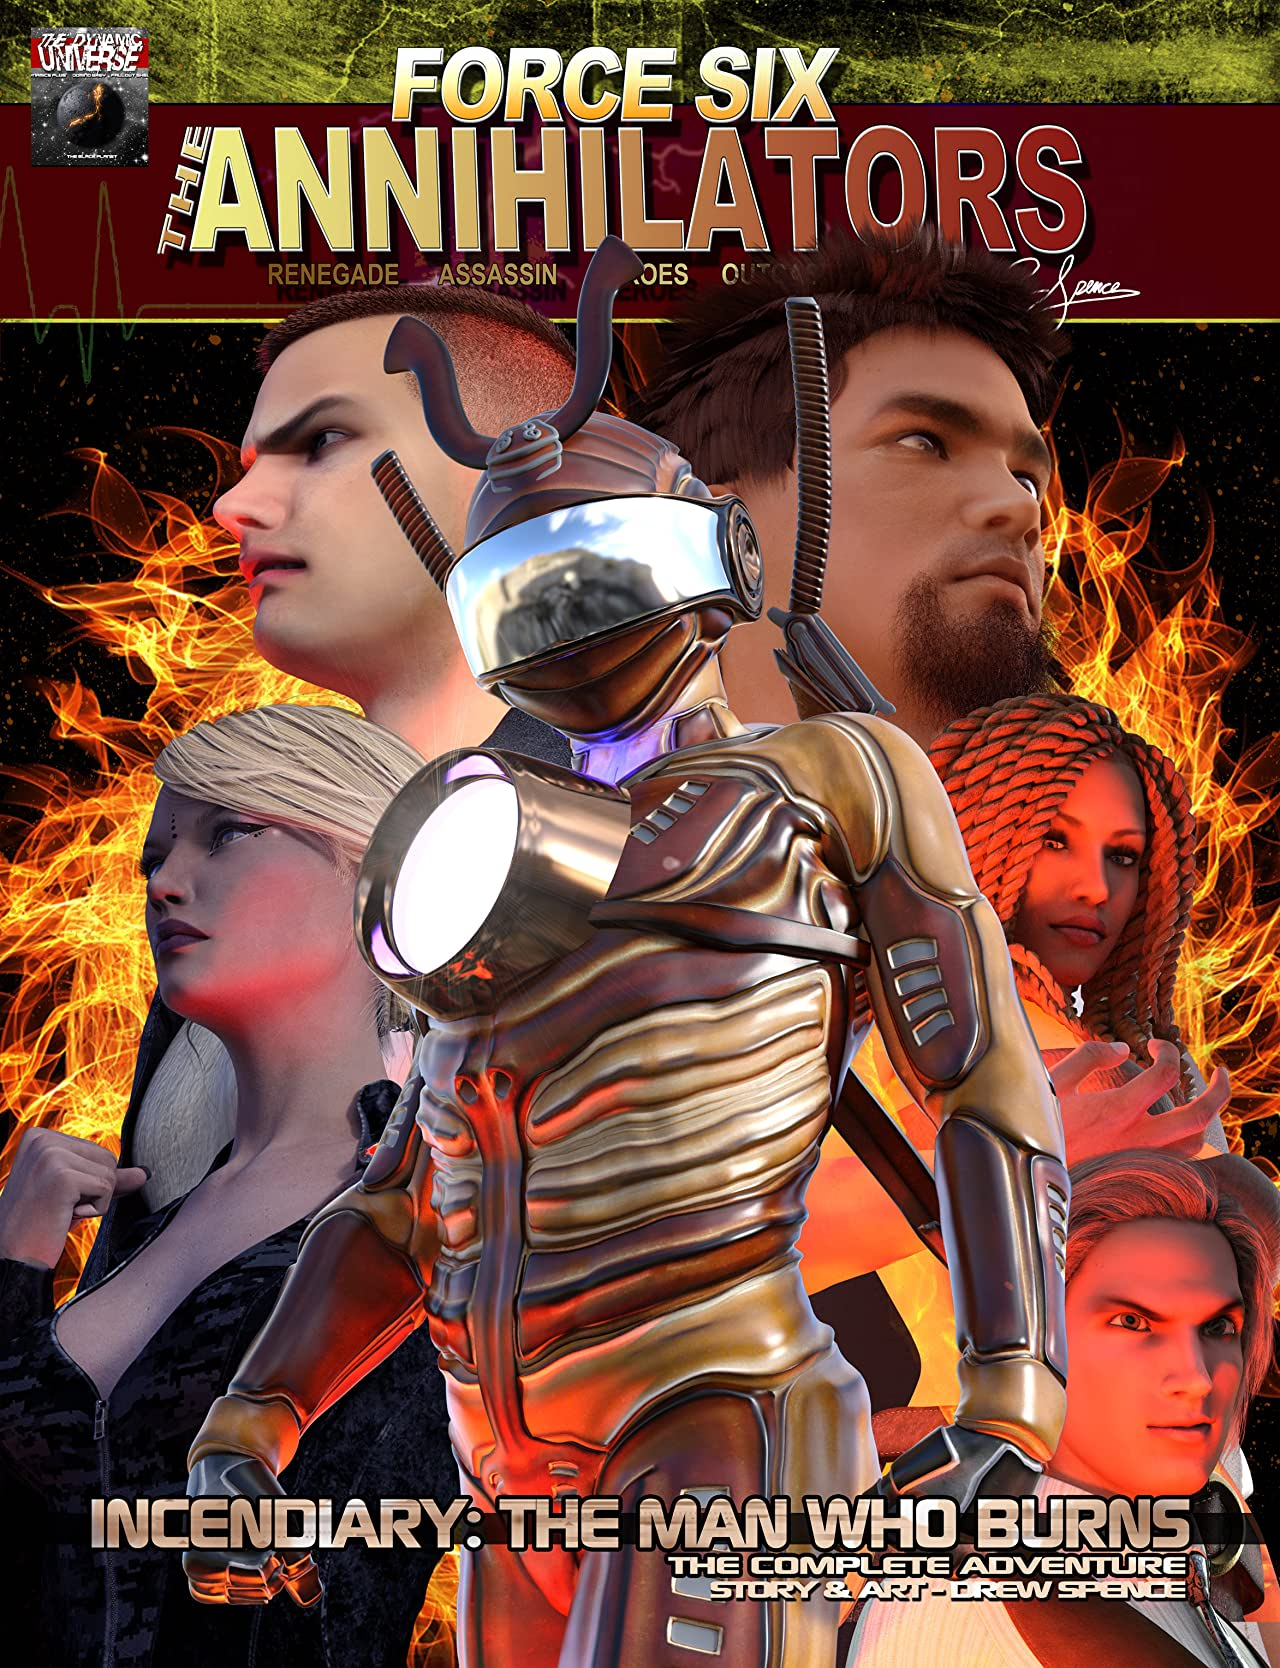 Force Six, The Annihilators: Collection: Incendiary: The Man who Burns